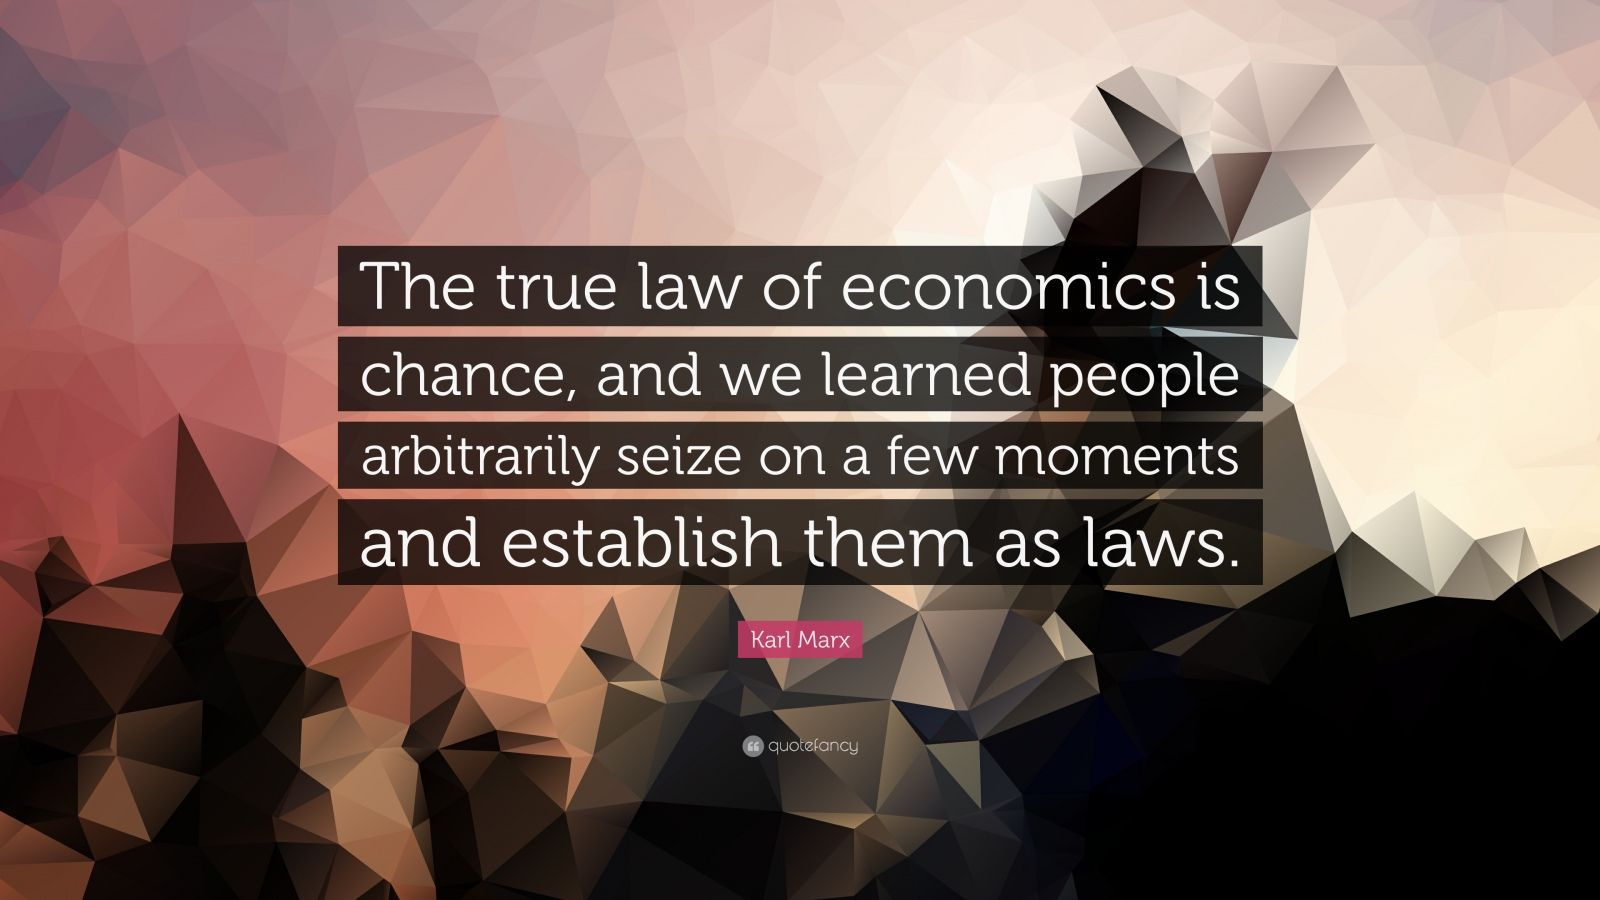 karl marx quotes 100  karl marx quote ldquothe true law of economics is chance and we learned